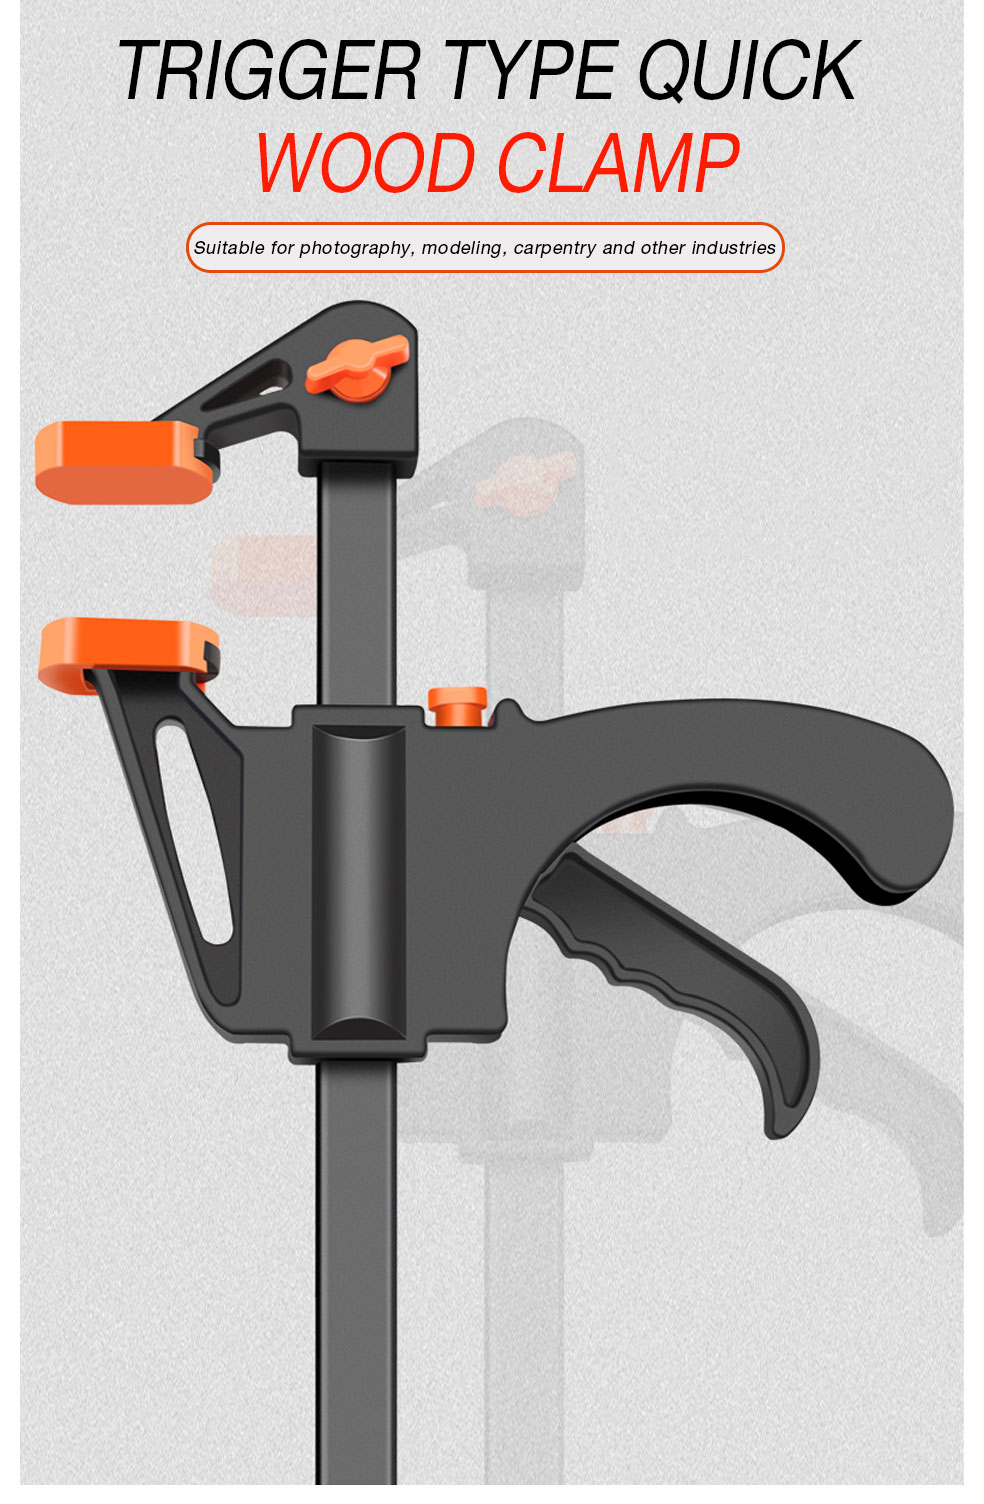 Trigger Type Quick Wood clamp